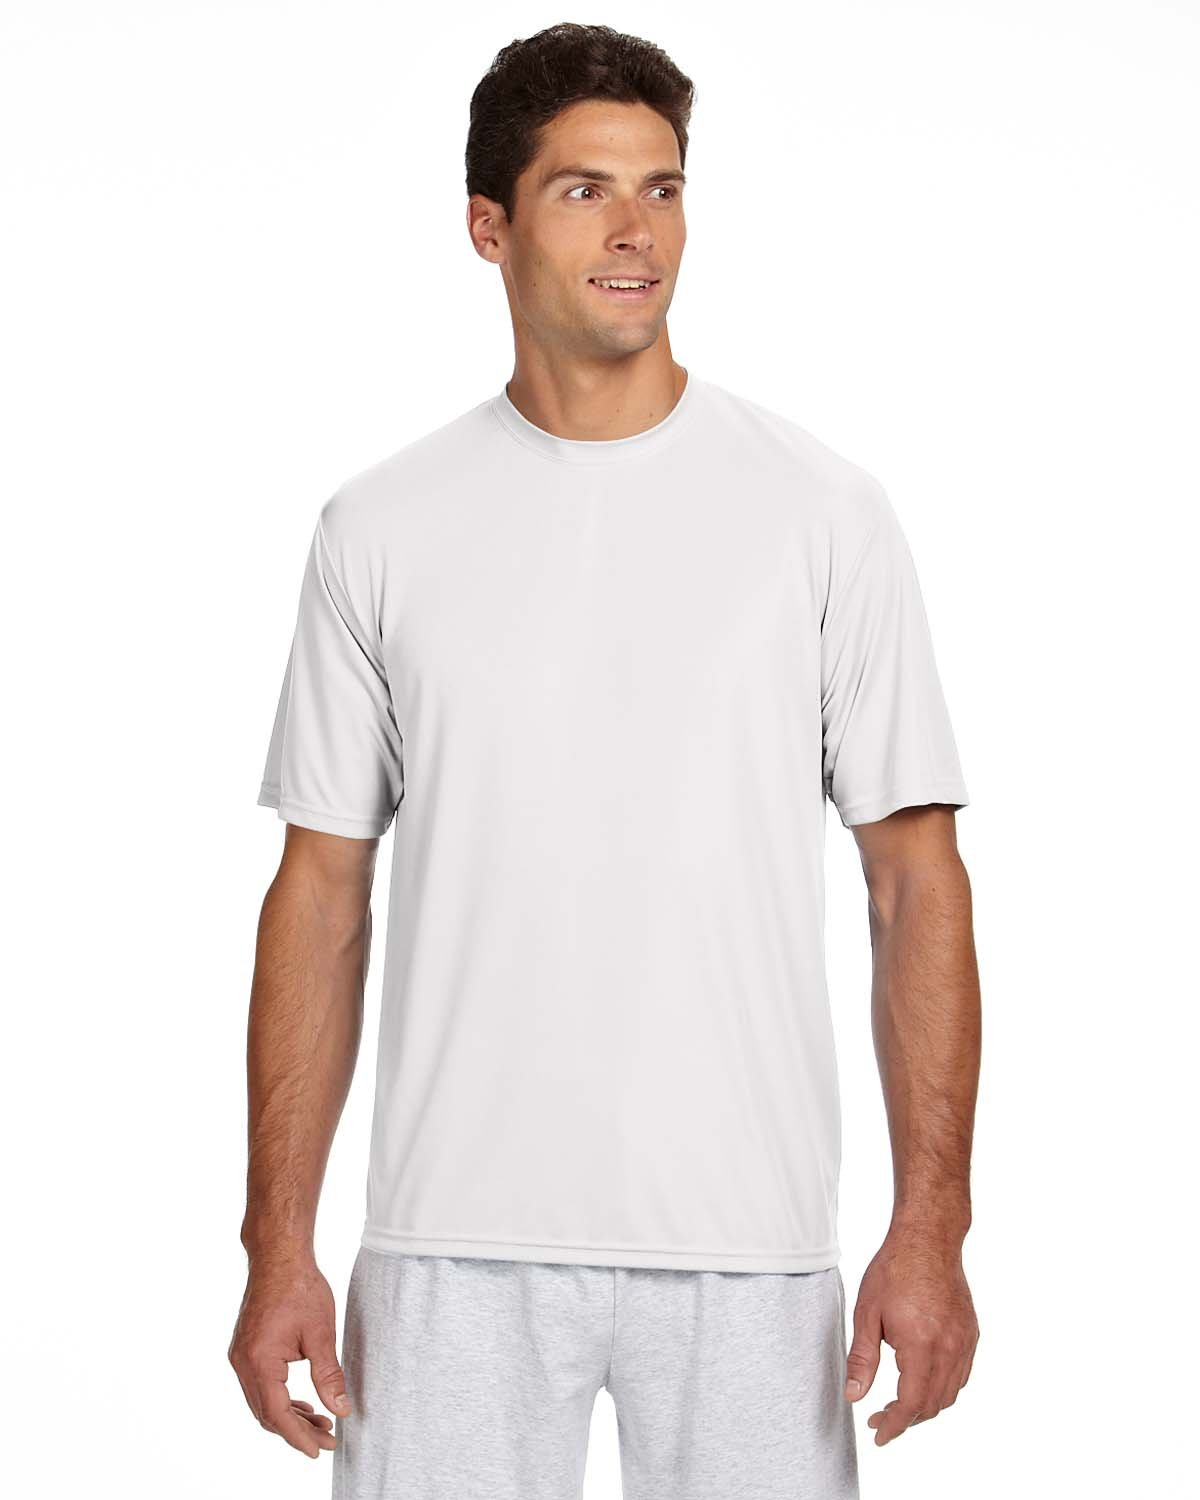 A4 Men's Cooling Performance Crew Short Sleeve Tee by A4